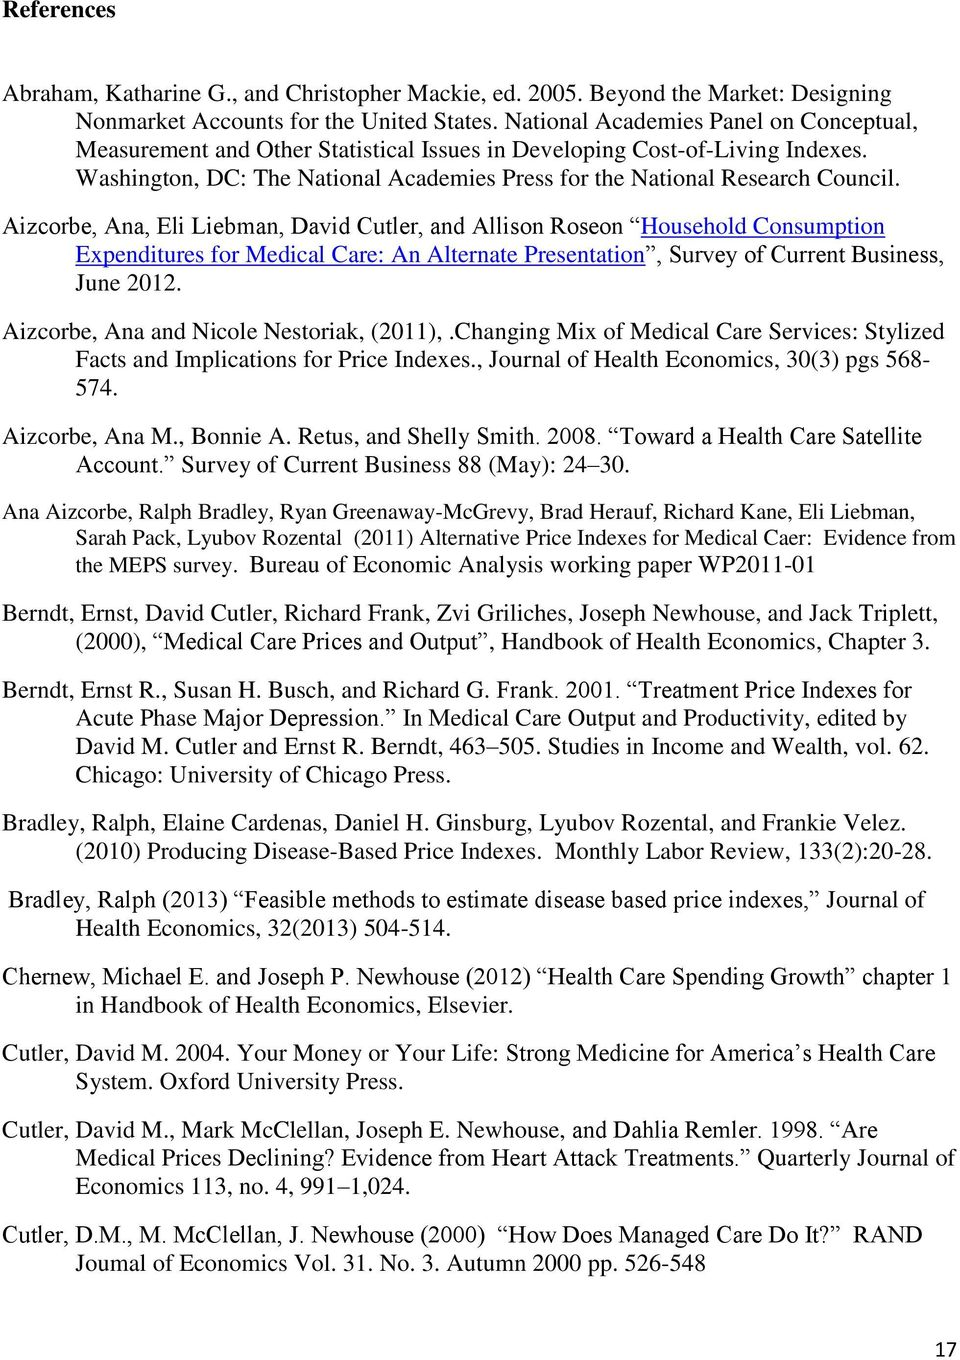 Aizcorbe, Ana, Eli Liebman, David Cutler, and Allison Roseon Household Consumption Expenditures for Medical Care: An Alternate Presentation, Survey of Current Business, June 2012.